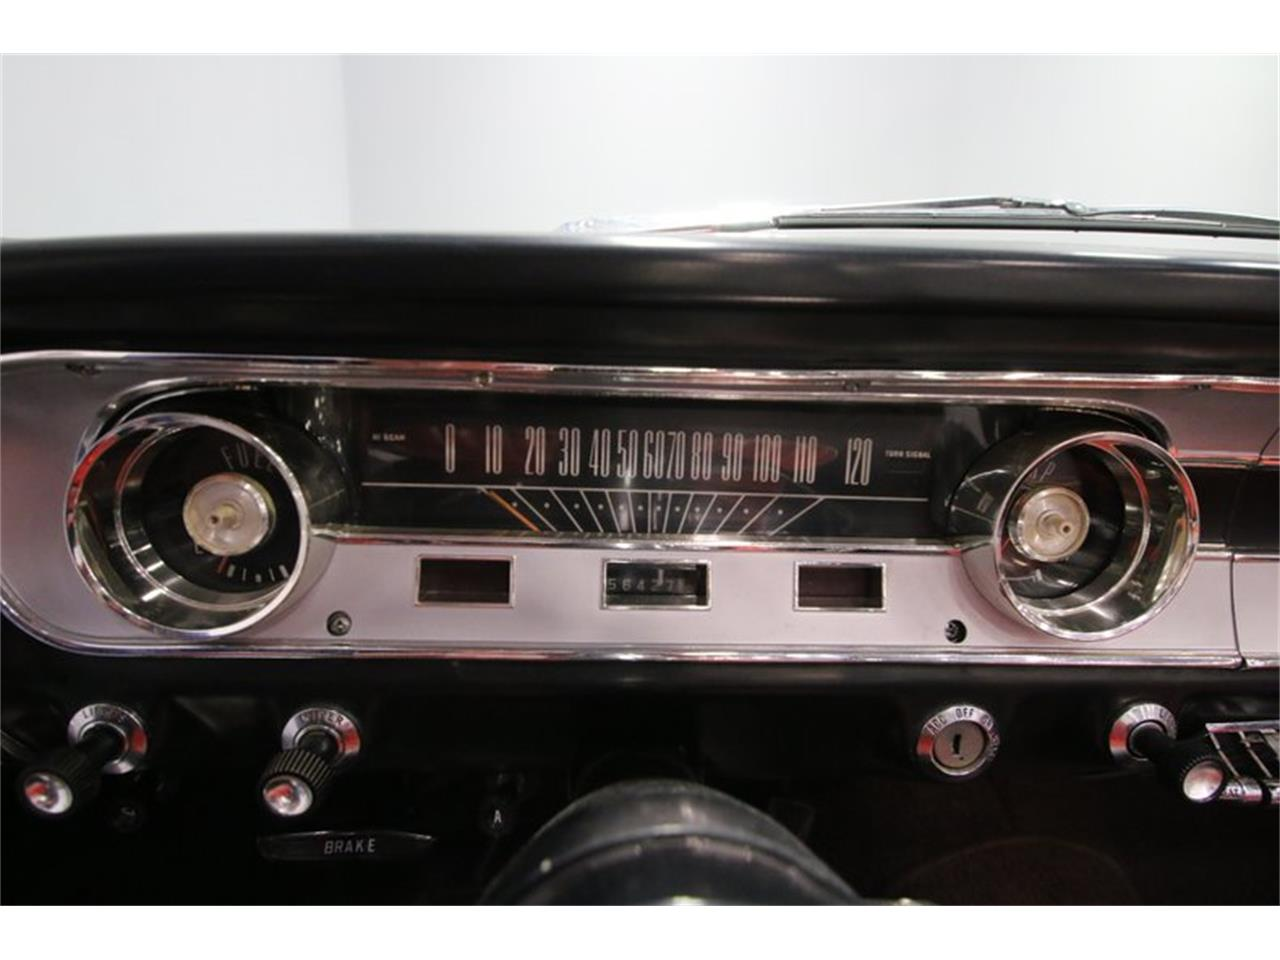 1964 Ford Falcon Futura for sale in Lavergne, TN – photo 47